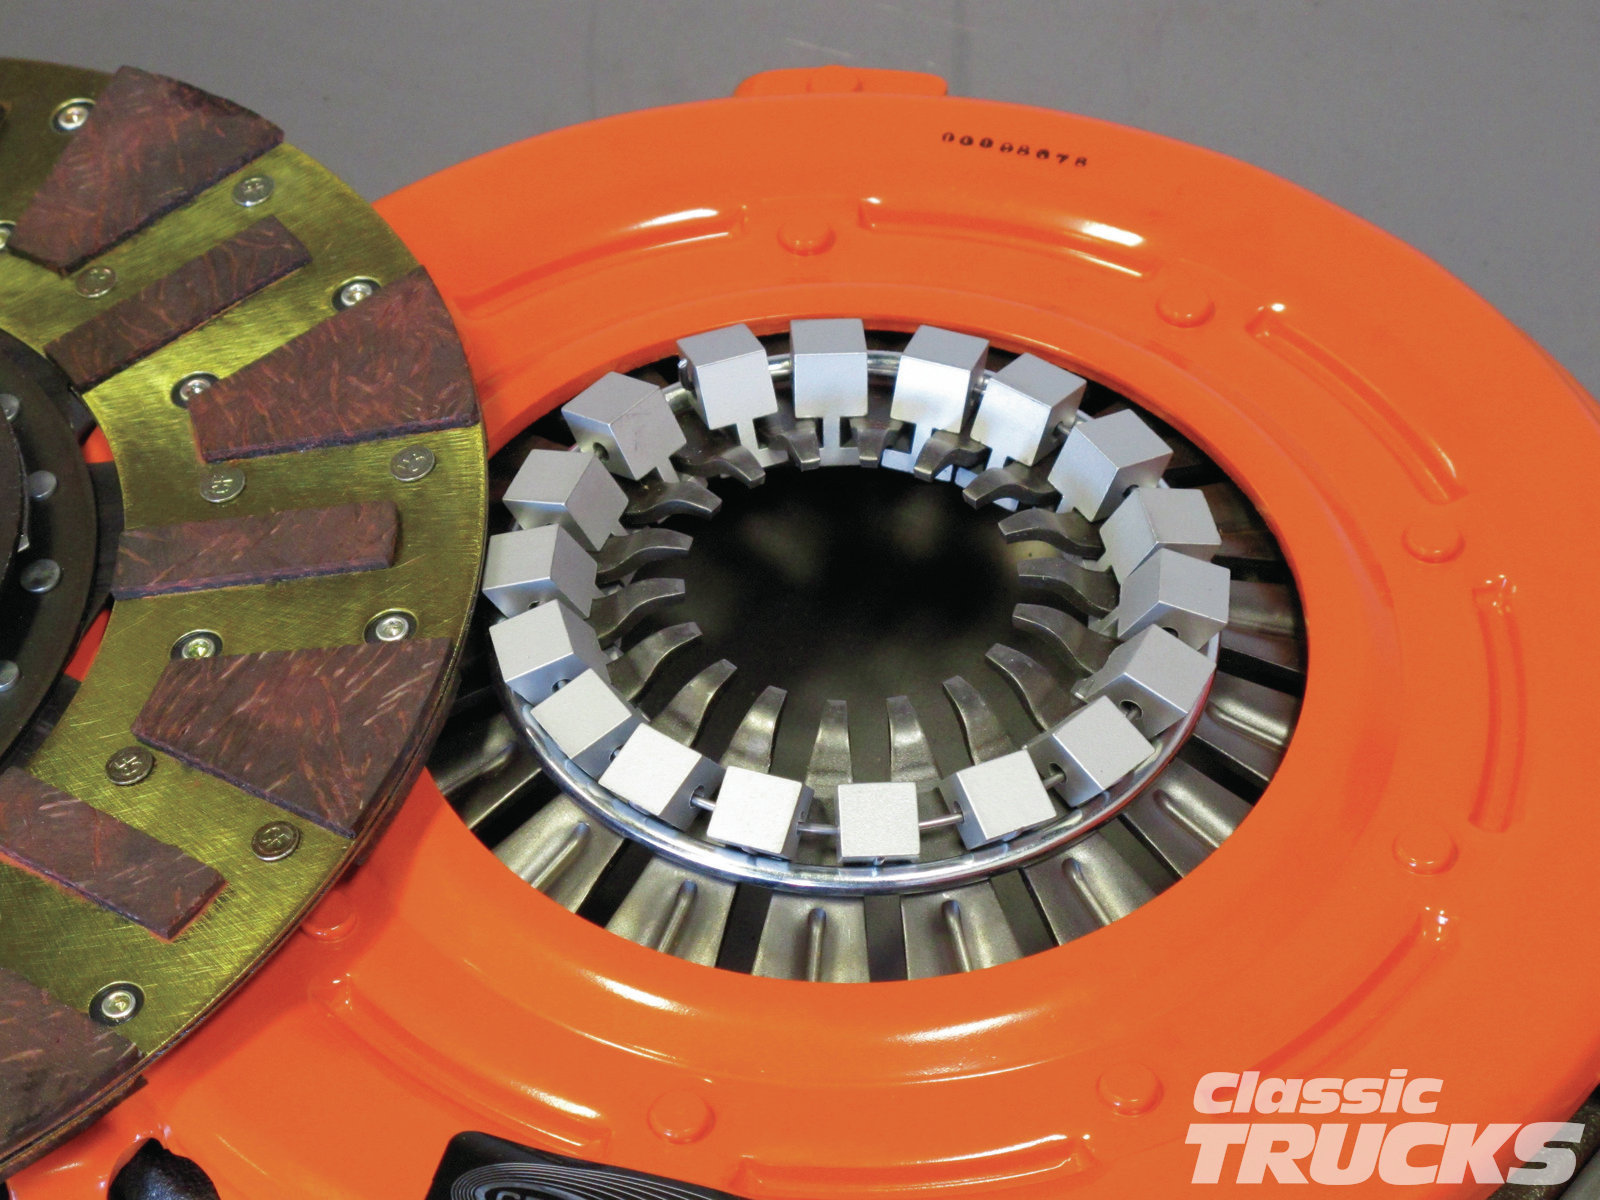 [11] Centerforce pressure plates use a weighted style system that adds pressure to the clutch disc when rpm increases. This means that the more rpm the engine has, the more pressure or clamping force the pressure plate can apply to the clutch disc, thus less chances of slipping.